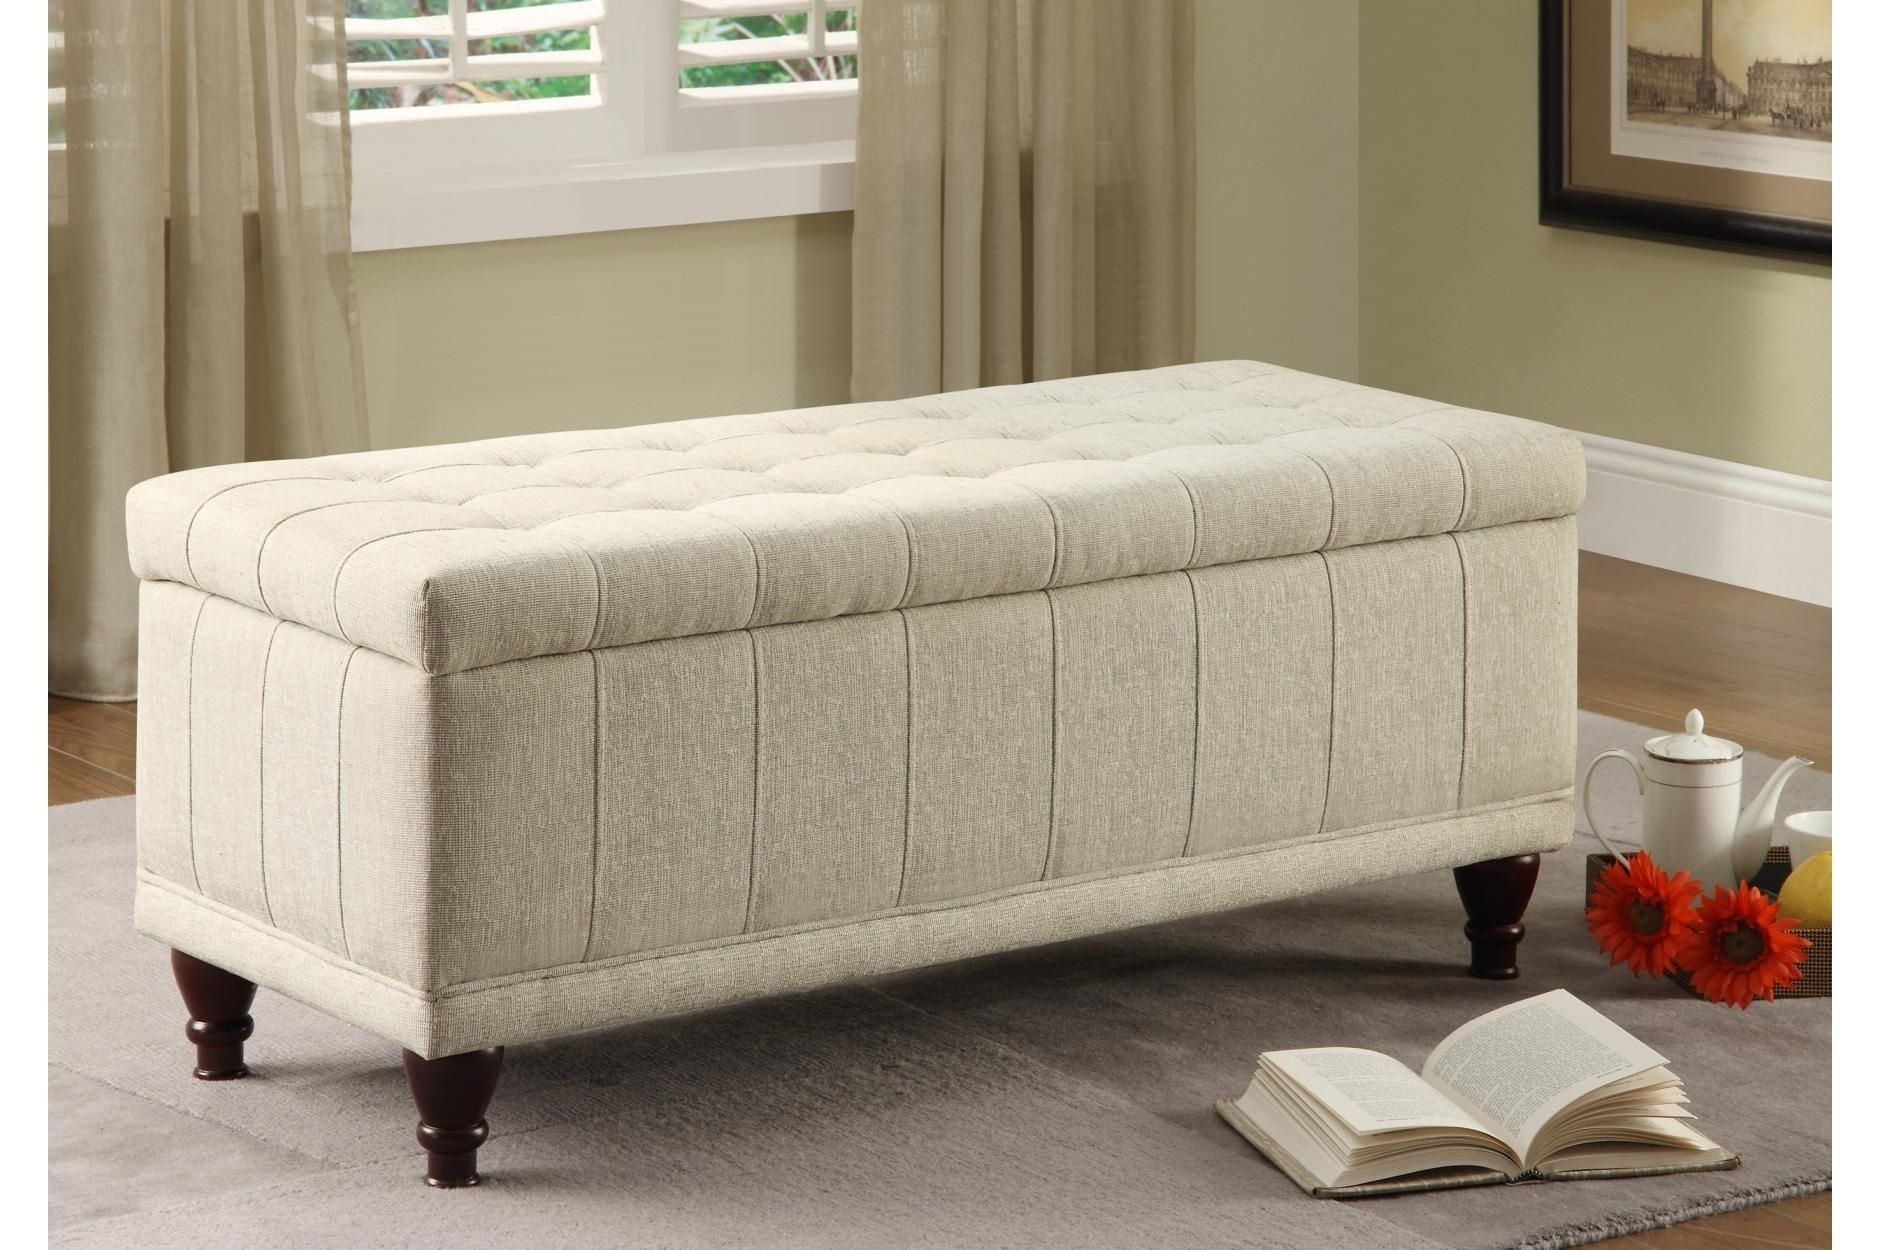 21+ Where to buy bedroom storage bench formasi cpns